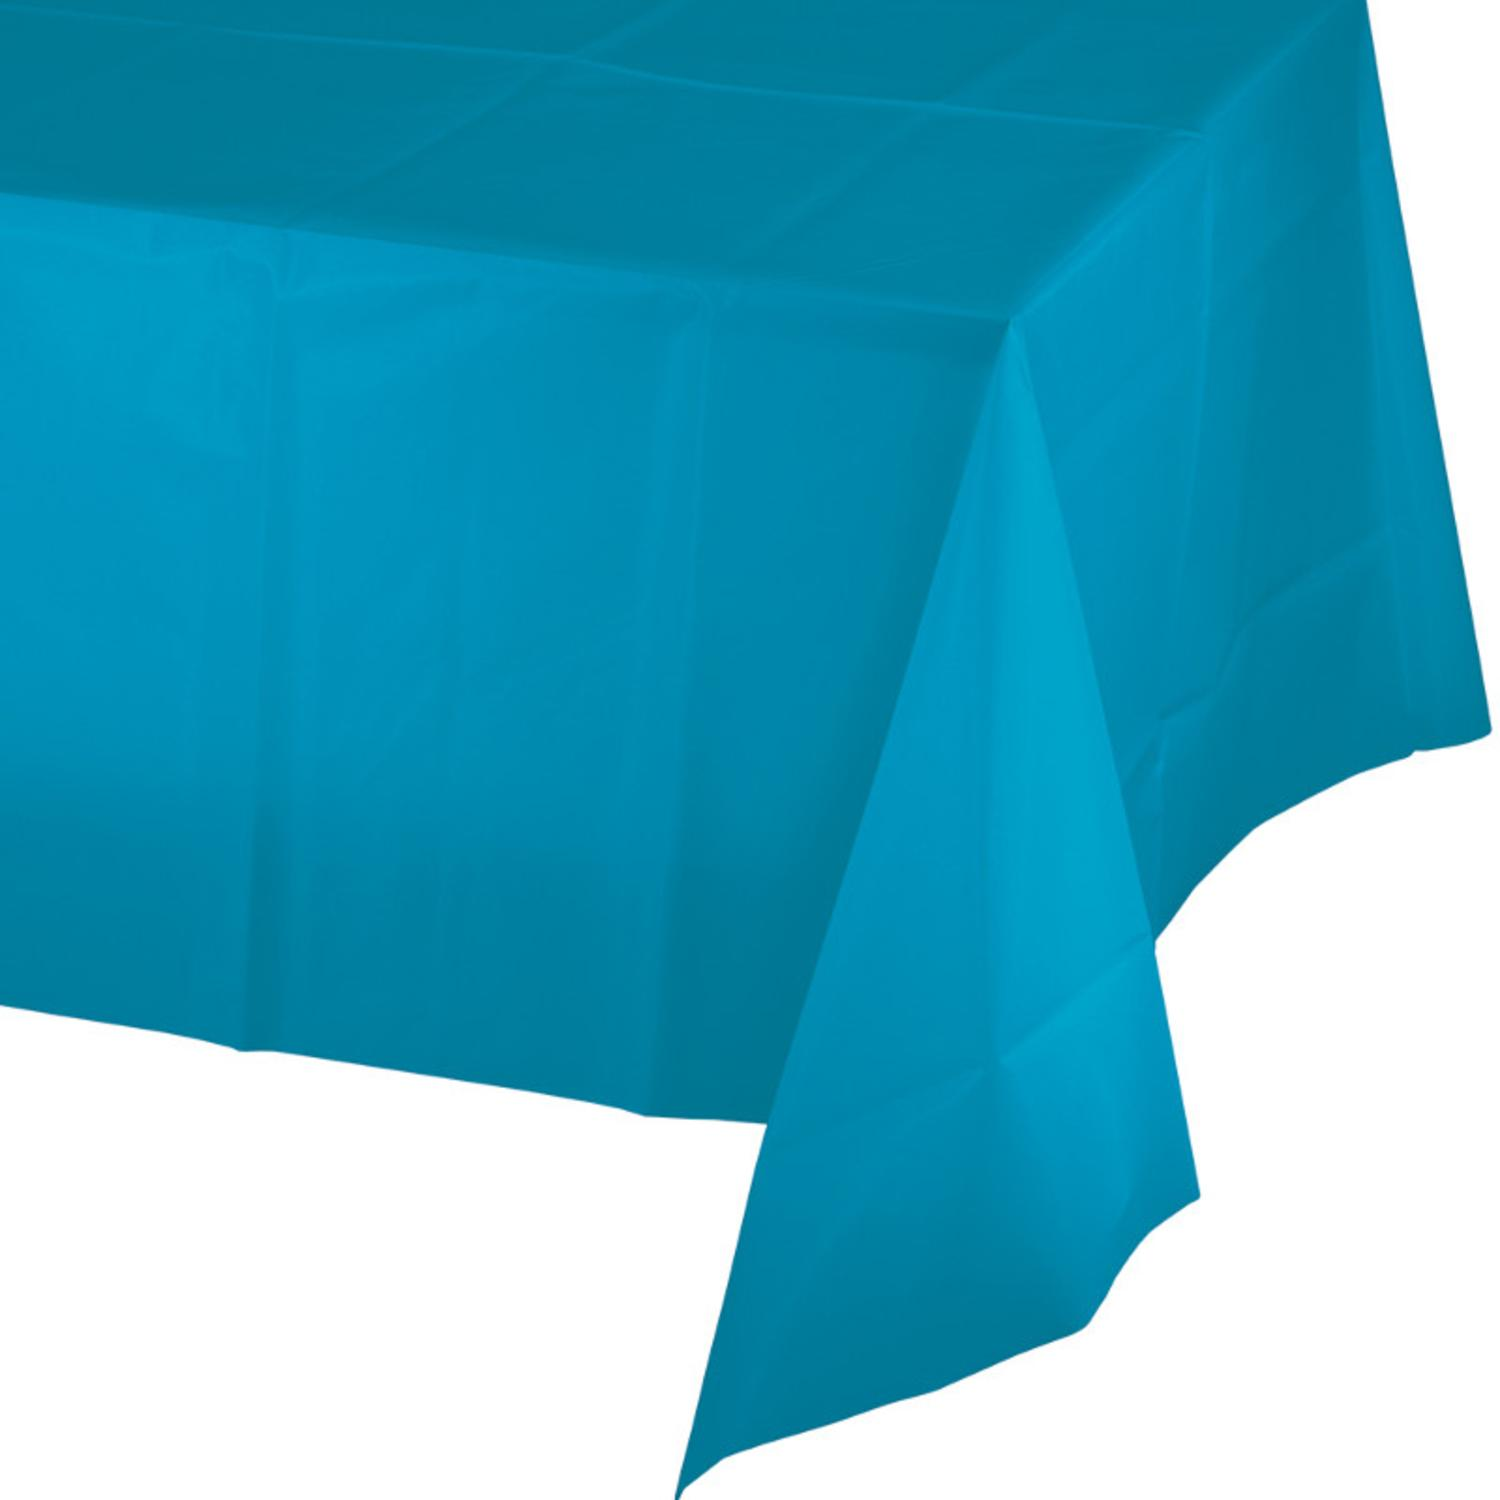 Club Pack of 12 Turquoise Blue Disposable Plastic Banquet Party Table Covers 108